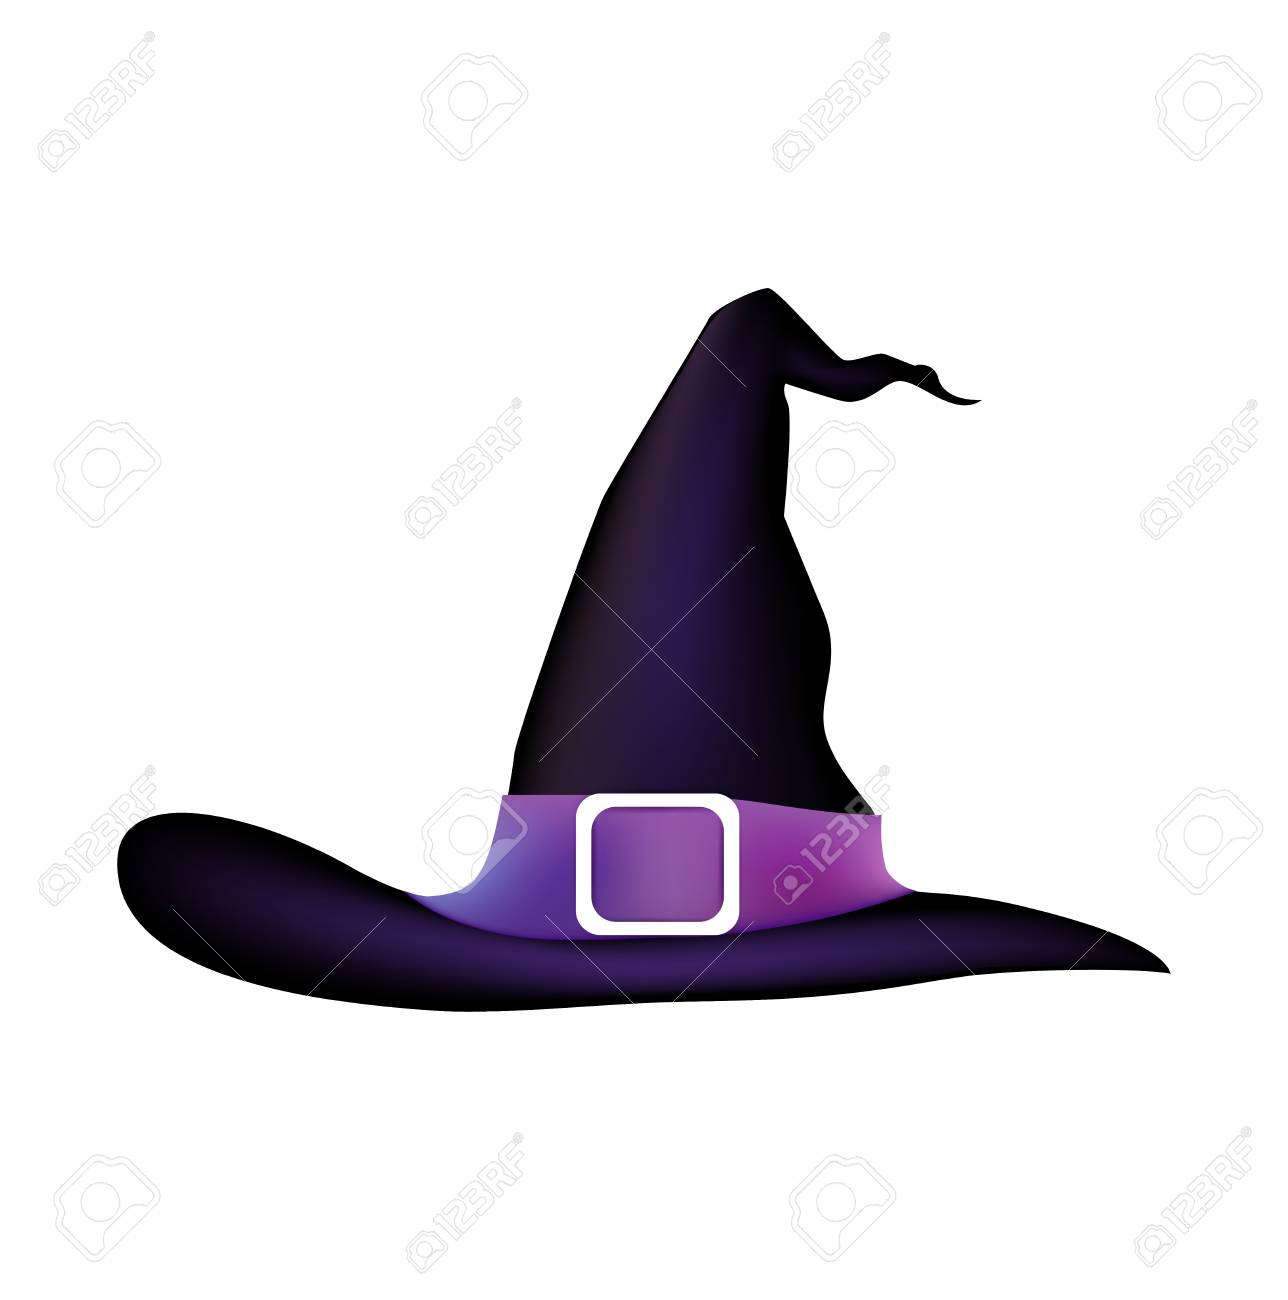 Cartoon Halloween Witch Hat Royalty Free Cliparts Vectors And Stock Illustration Image 117547256